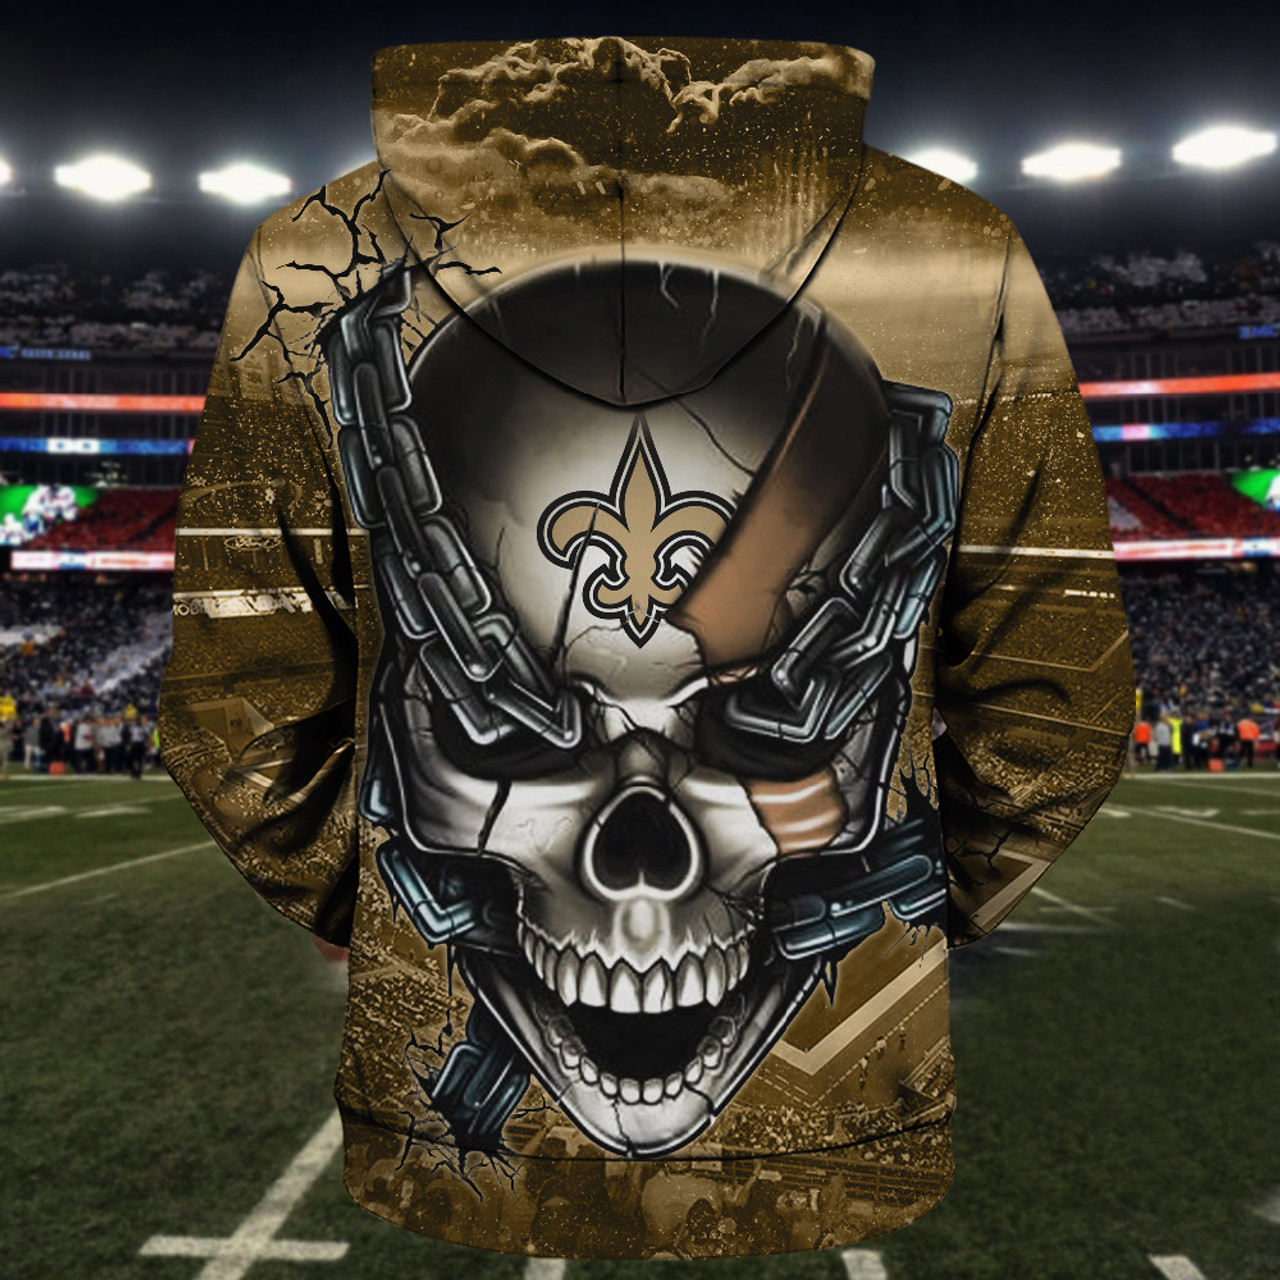 **(OFFICIAL-N.F.L.NEW-ORLEANS-SAINTS-TEAM-FOOTBALL-ZIPPERED-HOODIES & SAINTS-TEAM-LOGO-SKULL/NEW-ORLEANS-CITY-CHAINS,NICE-CUSTOM-3D-GRAPHIC-PRINTED-DOUBLE-SIDED-TEAM-LOGOS & ALL-OVER-PRINTED-DESIGN/OFFICIAL-SAINTS-FOOTBALL-TEAM-ZIPPERED-HOODIES)**